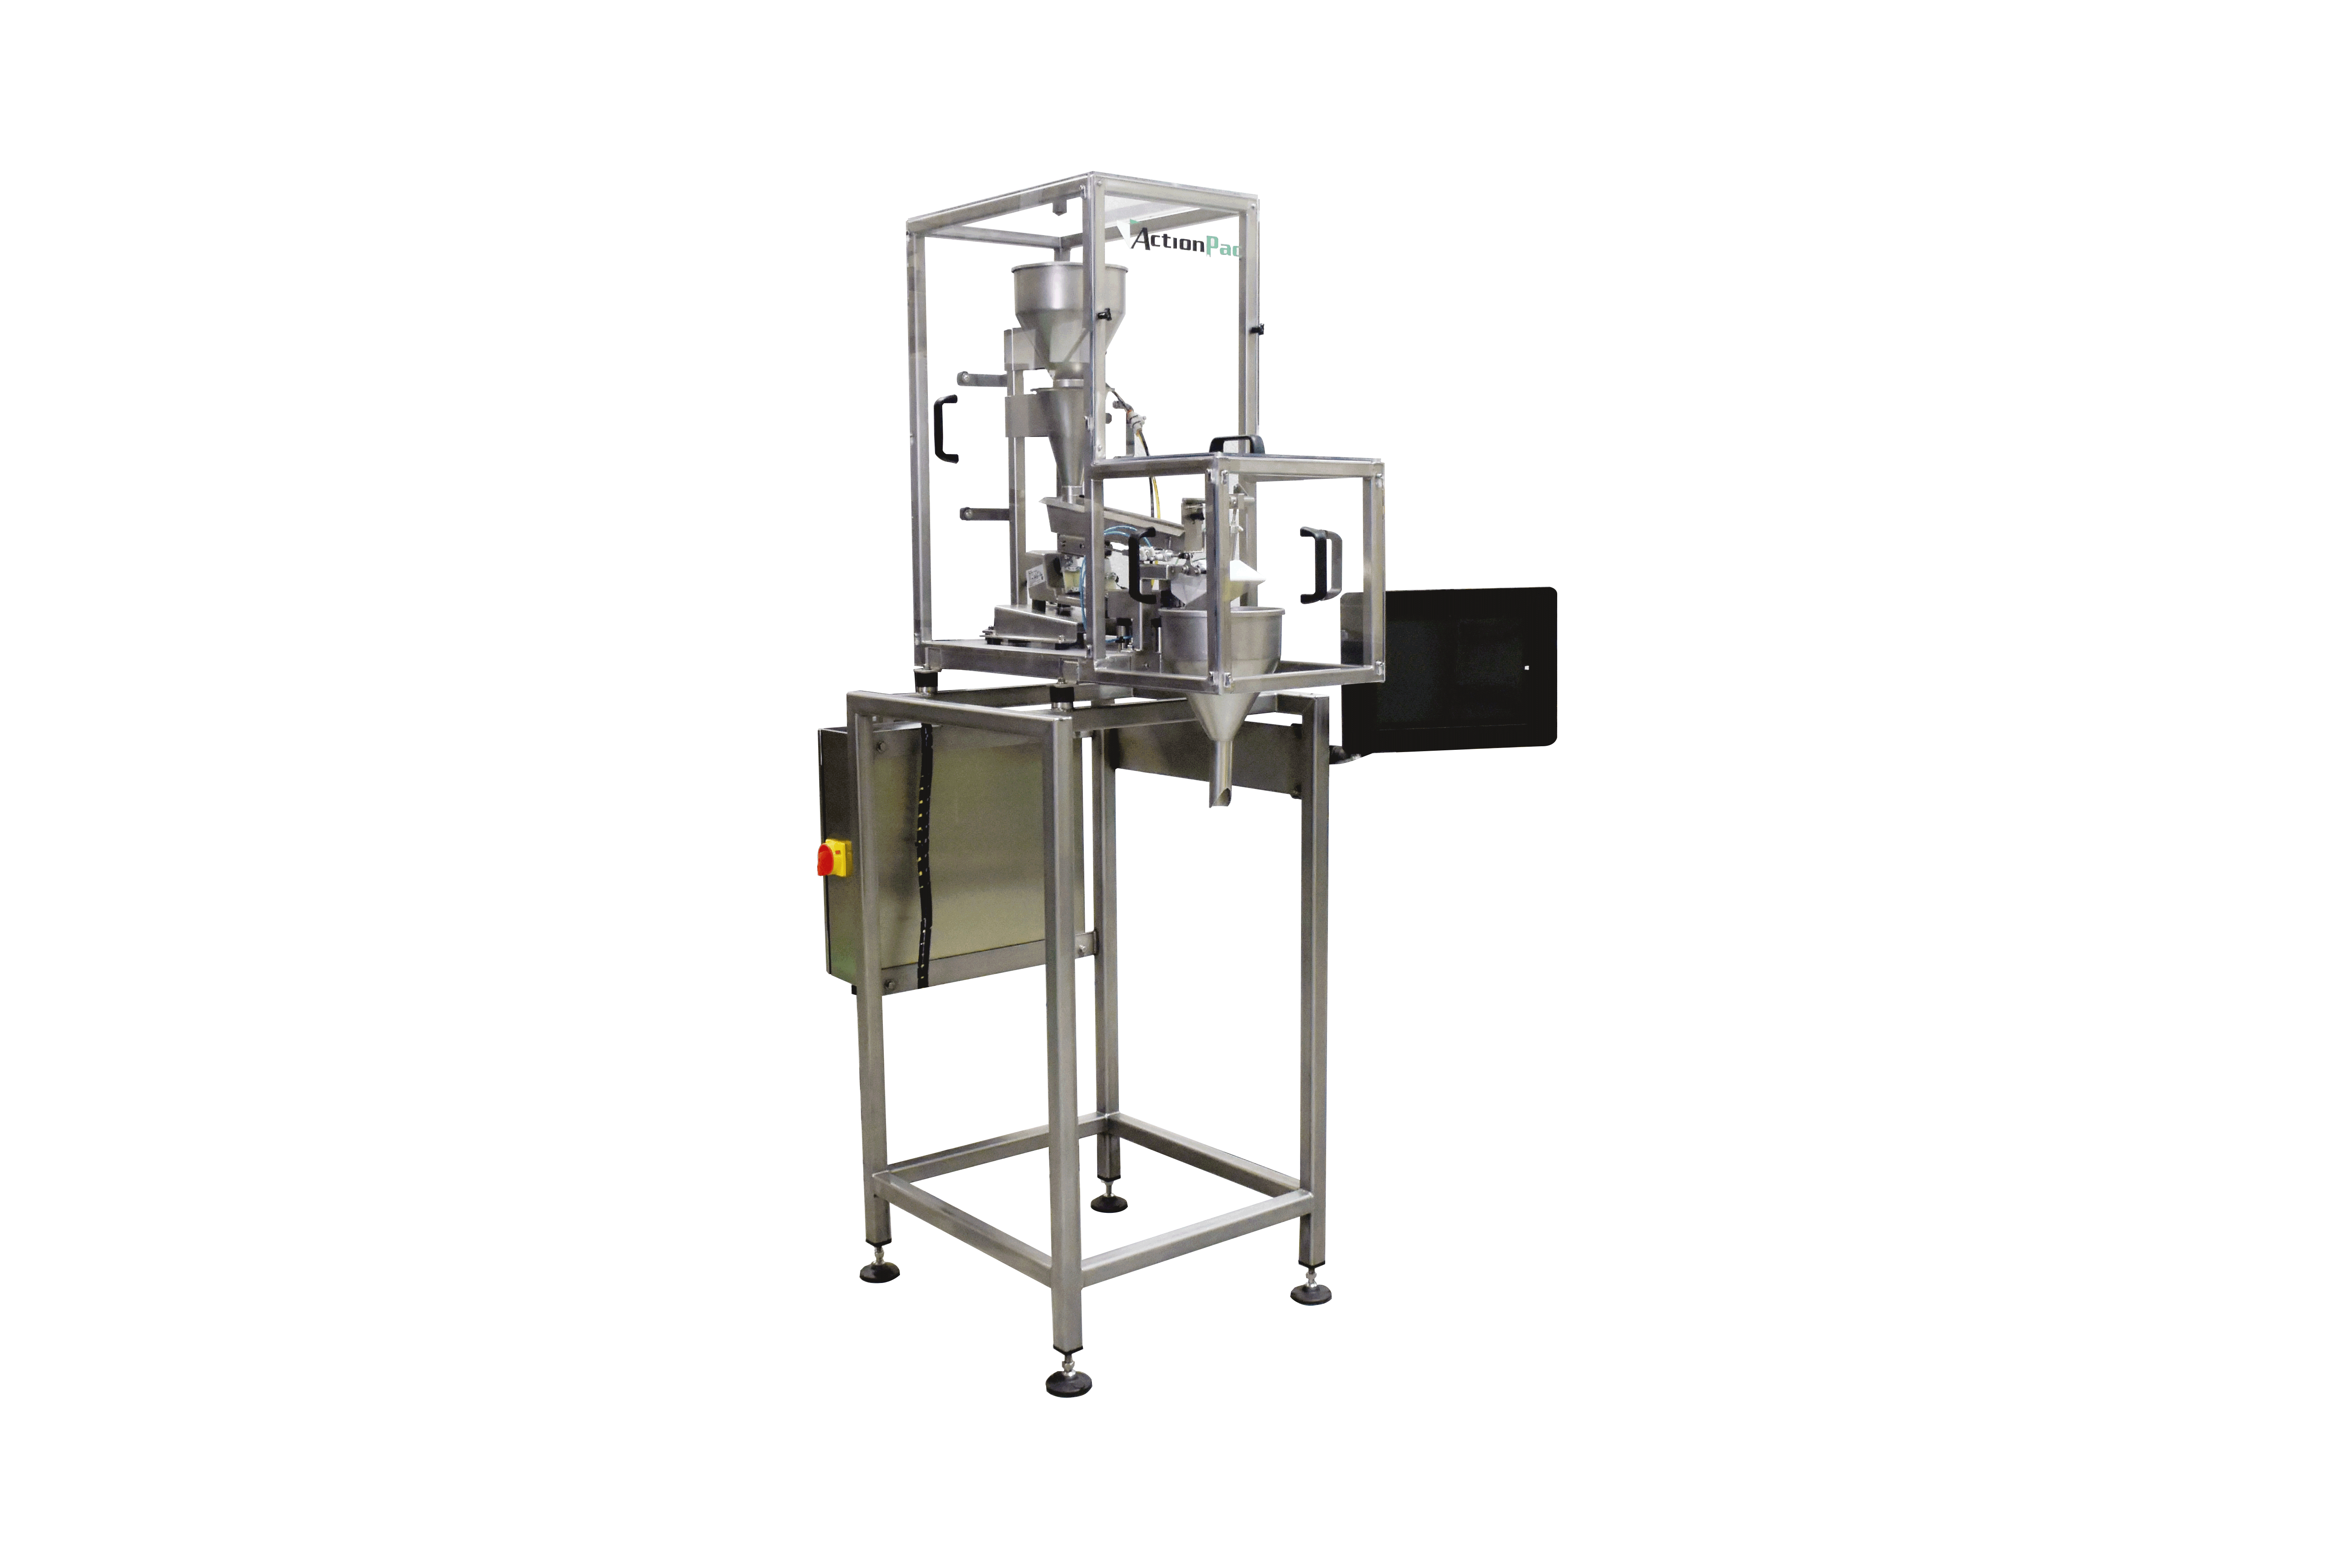 cbd weighing system, cbd weight and fill machine, cbd weigher machine, cbd net weighing machine, cbd filler machine, cbd filling machine,cbd, cbd powder machine,cbd packaging machine, cbd packing machine, cbd packaging, cbd packing, cannabidiol packaging machine, cannabidiol packing machine,cbd industry, cbd machinery, cbd labeler, cbd weighing, cbd hemp powder, cbd packing equipment, cbd packing